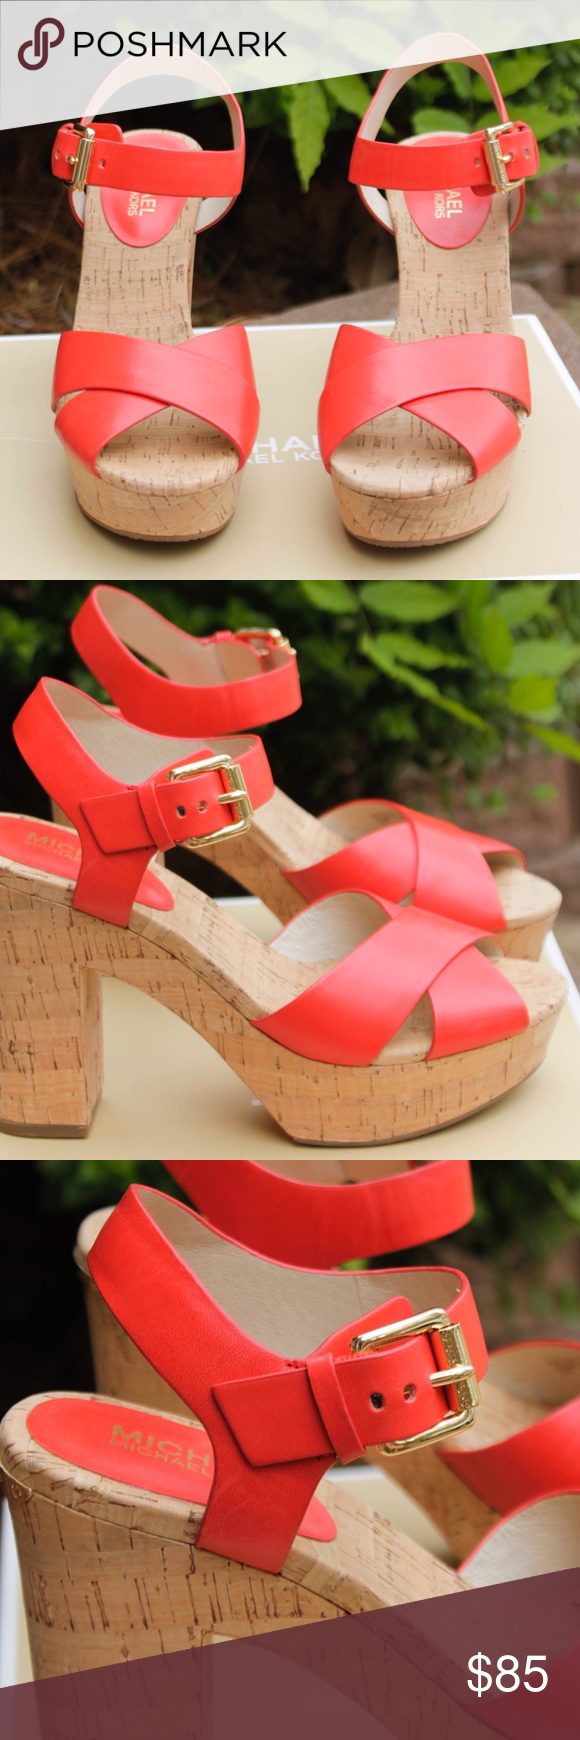 Coral Red Michael Kors Heels / Sandals Red Michael Kors buckled sandals! Cork heels, gold accents. Worn once. Super cute for summer! Size 7 Michael Kors Shoes Heels